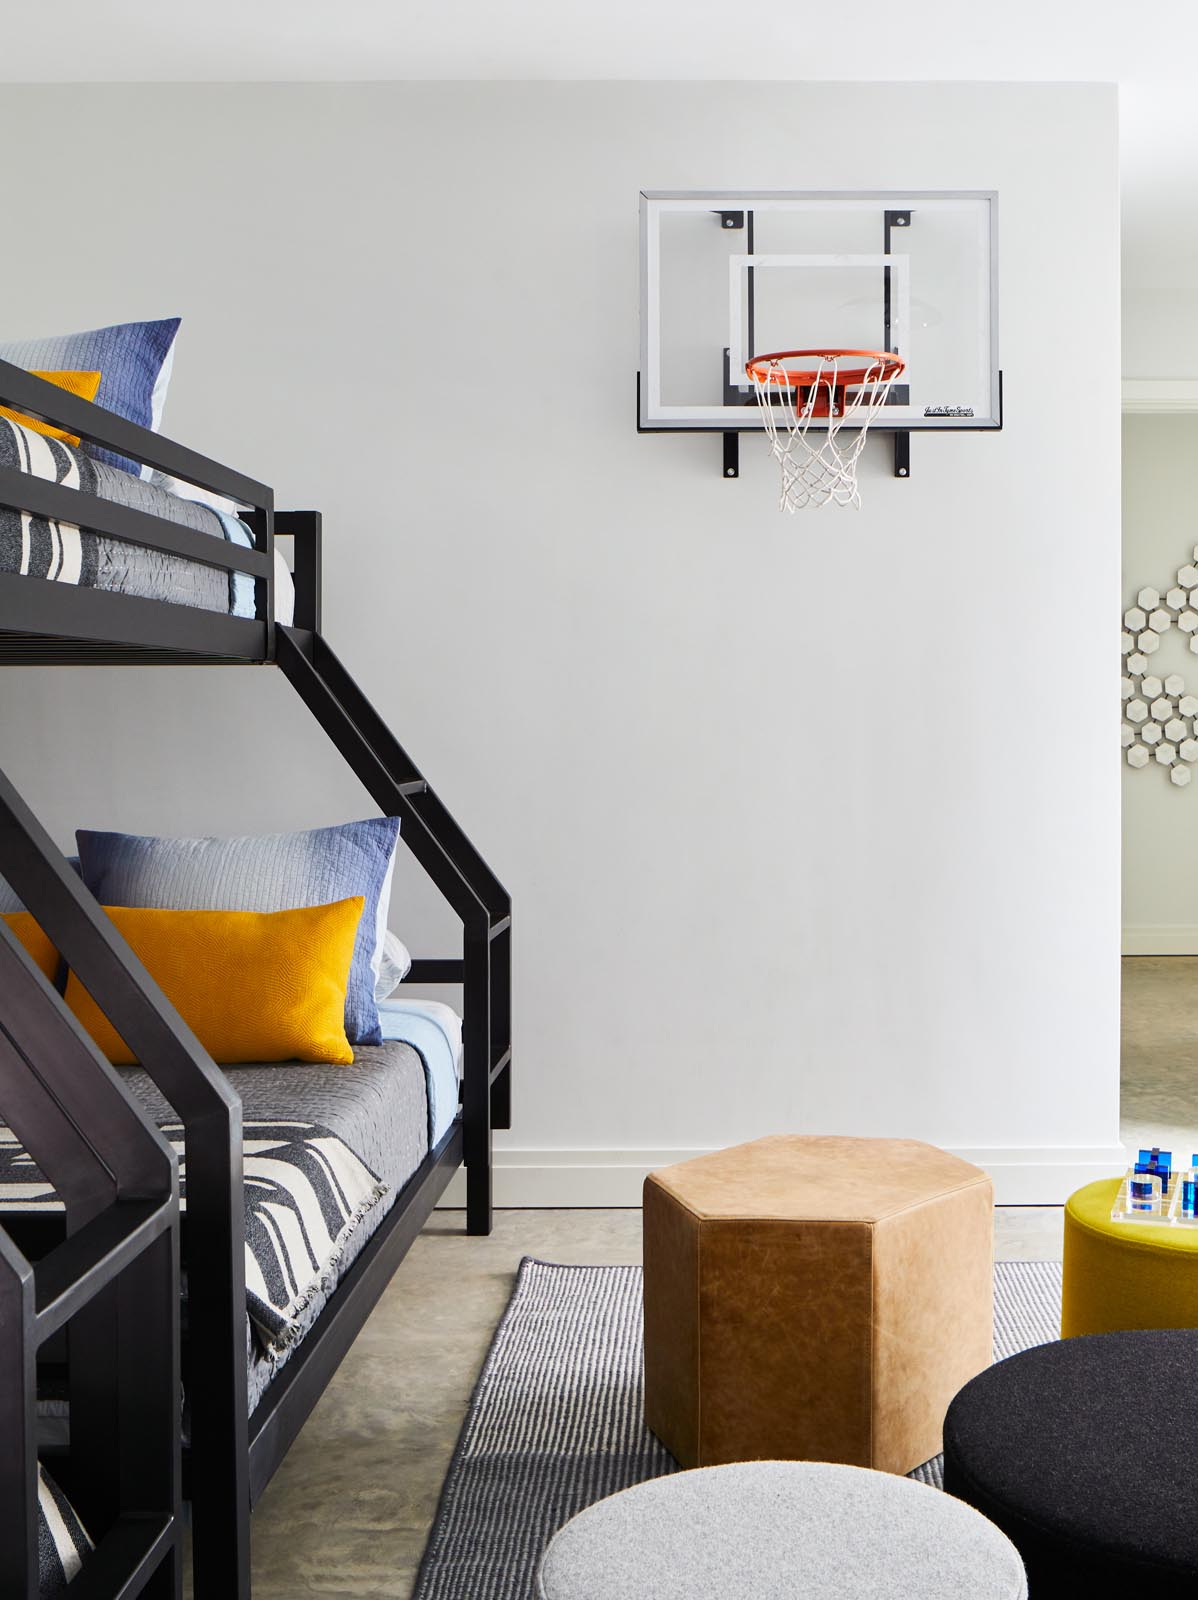 A kids bedroom with bunk beds and a basketball hoop.